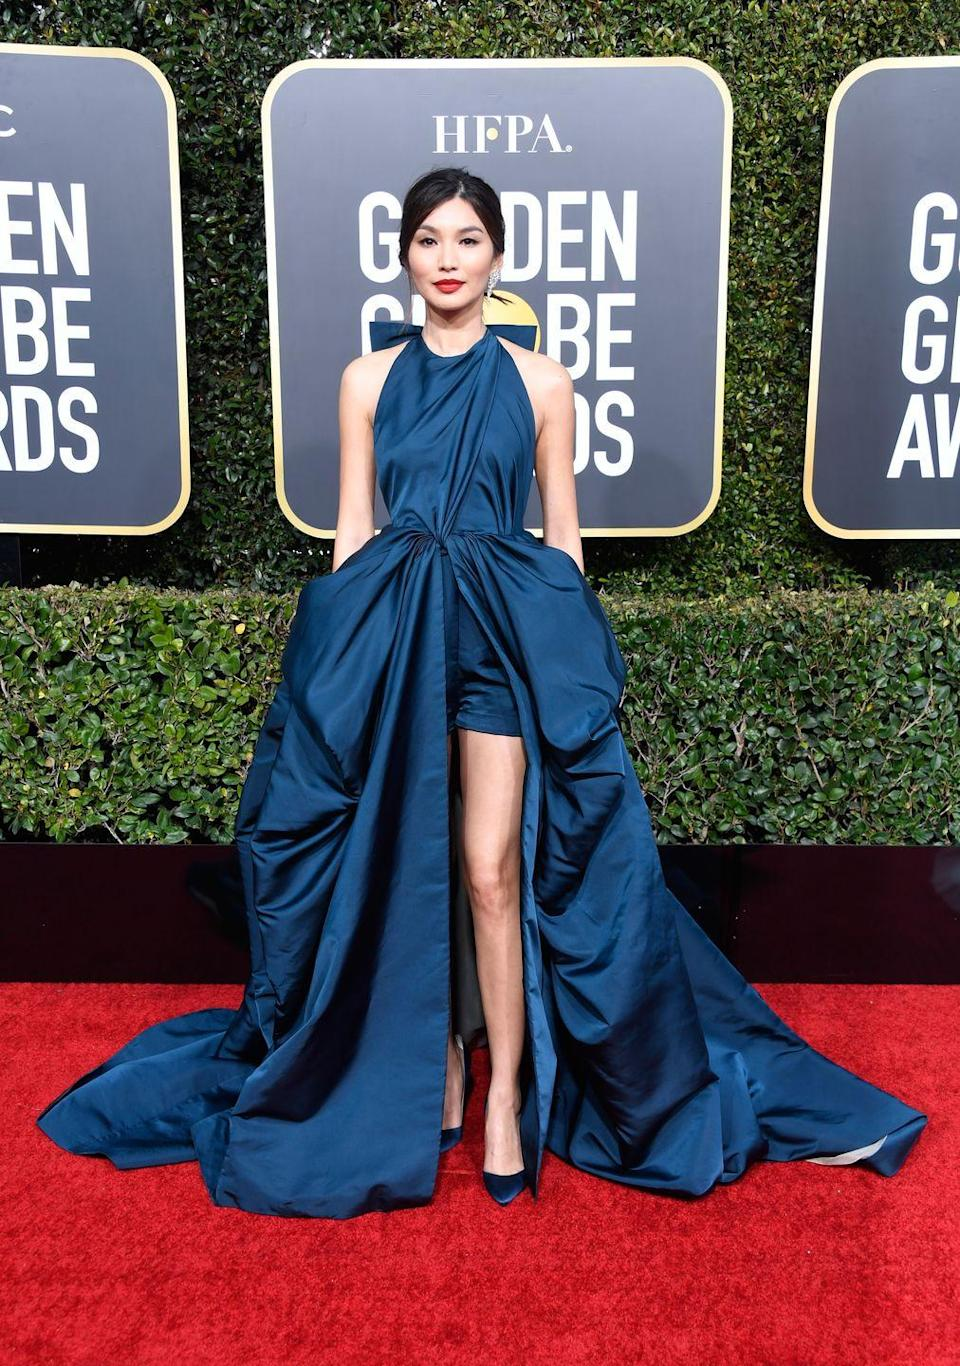 <p>Ever the style innovator, Gemma Chan opted for shorts for her Golden Globes moment in 2019. </p><p>The Valentino Couture hybrid gown is proof that shorts can do more than just be slung over a beached and sun-kissed leg, as she provided a modern twist on an otherwise classically styled red carpet gown. </p>